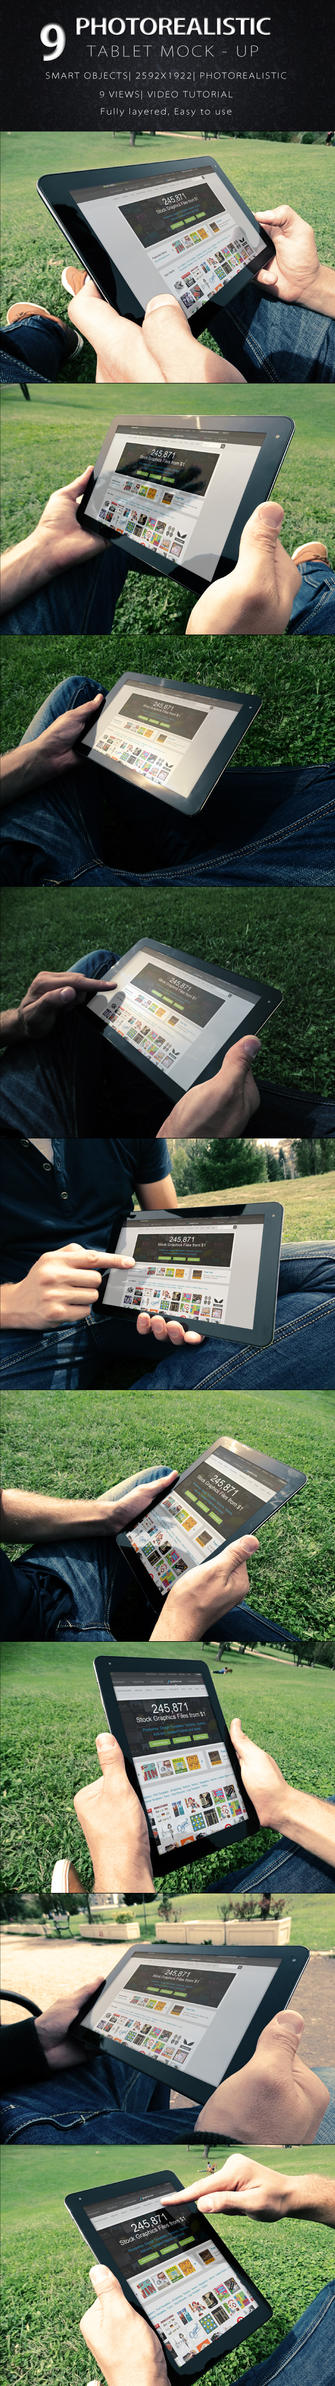 Photorealistic Tablet With Hands Mock-Up by KILVAM